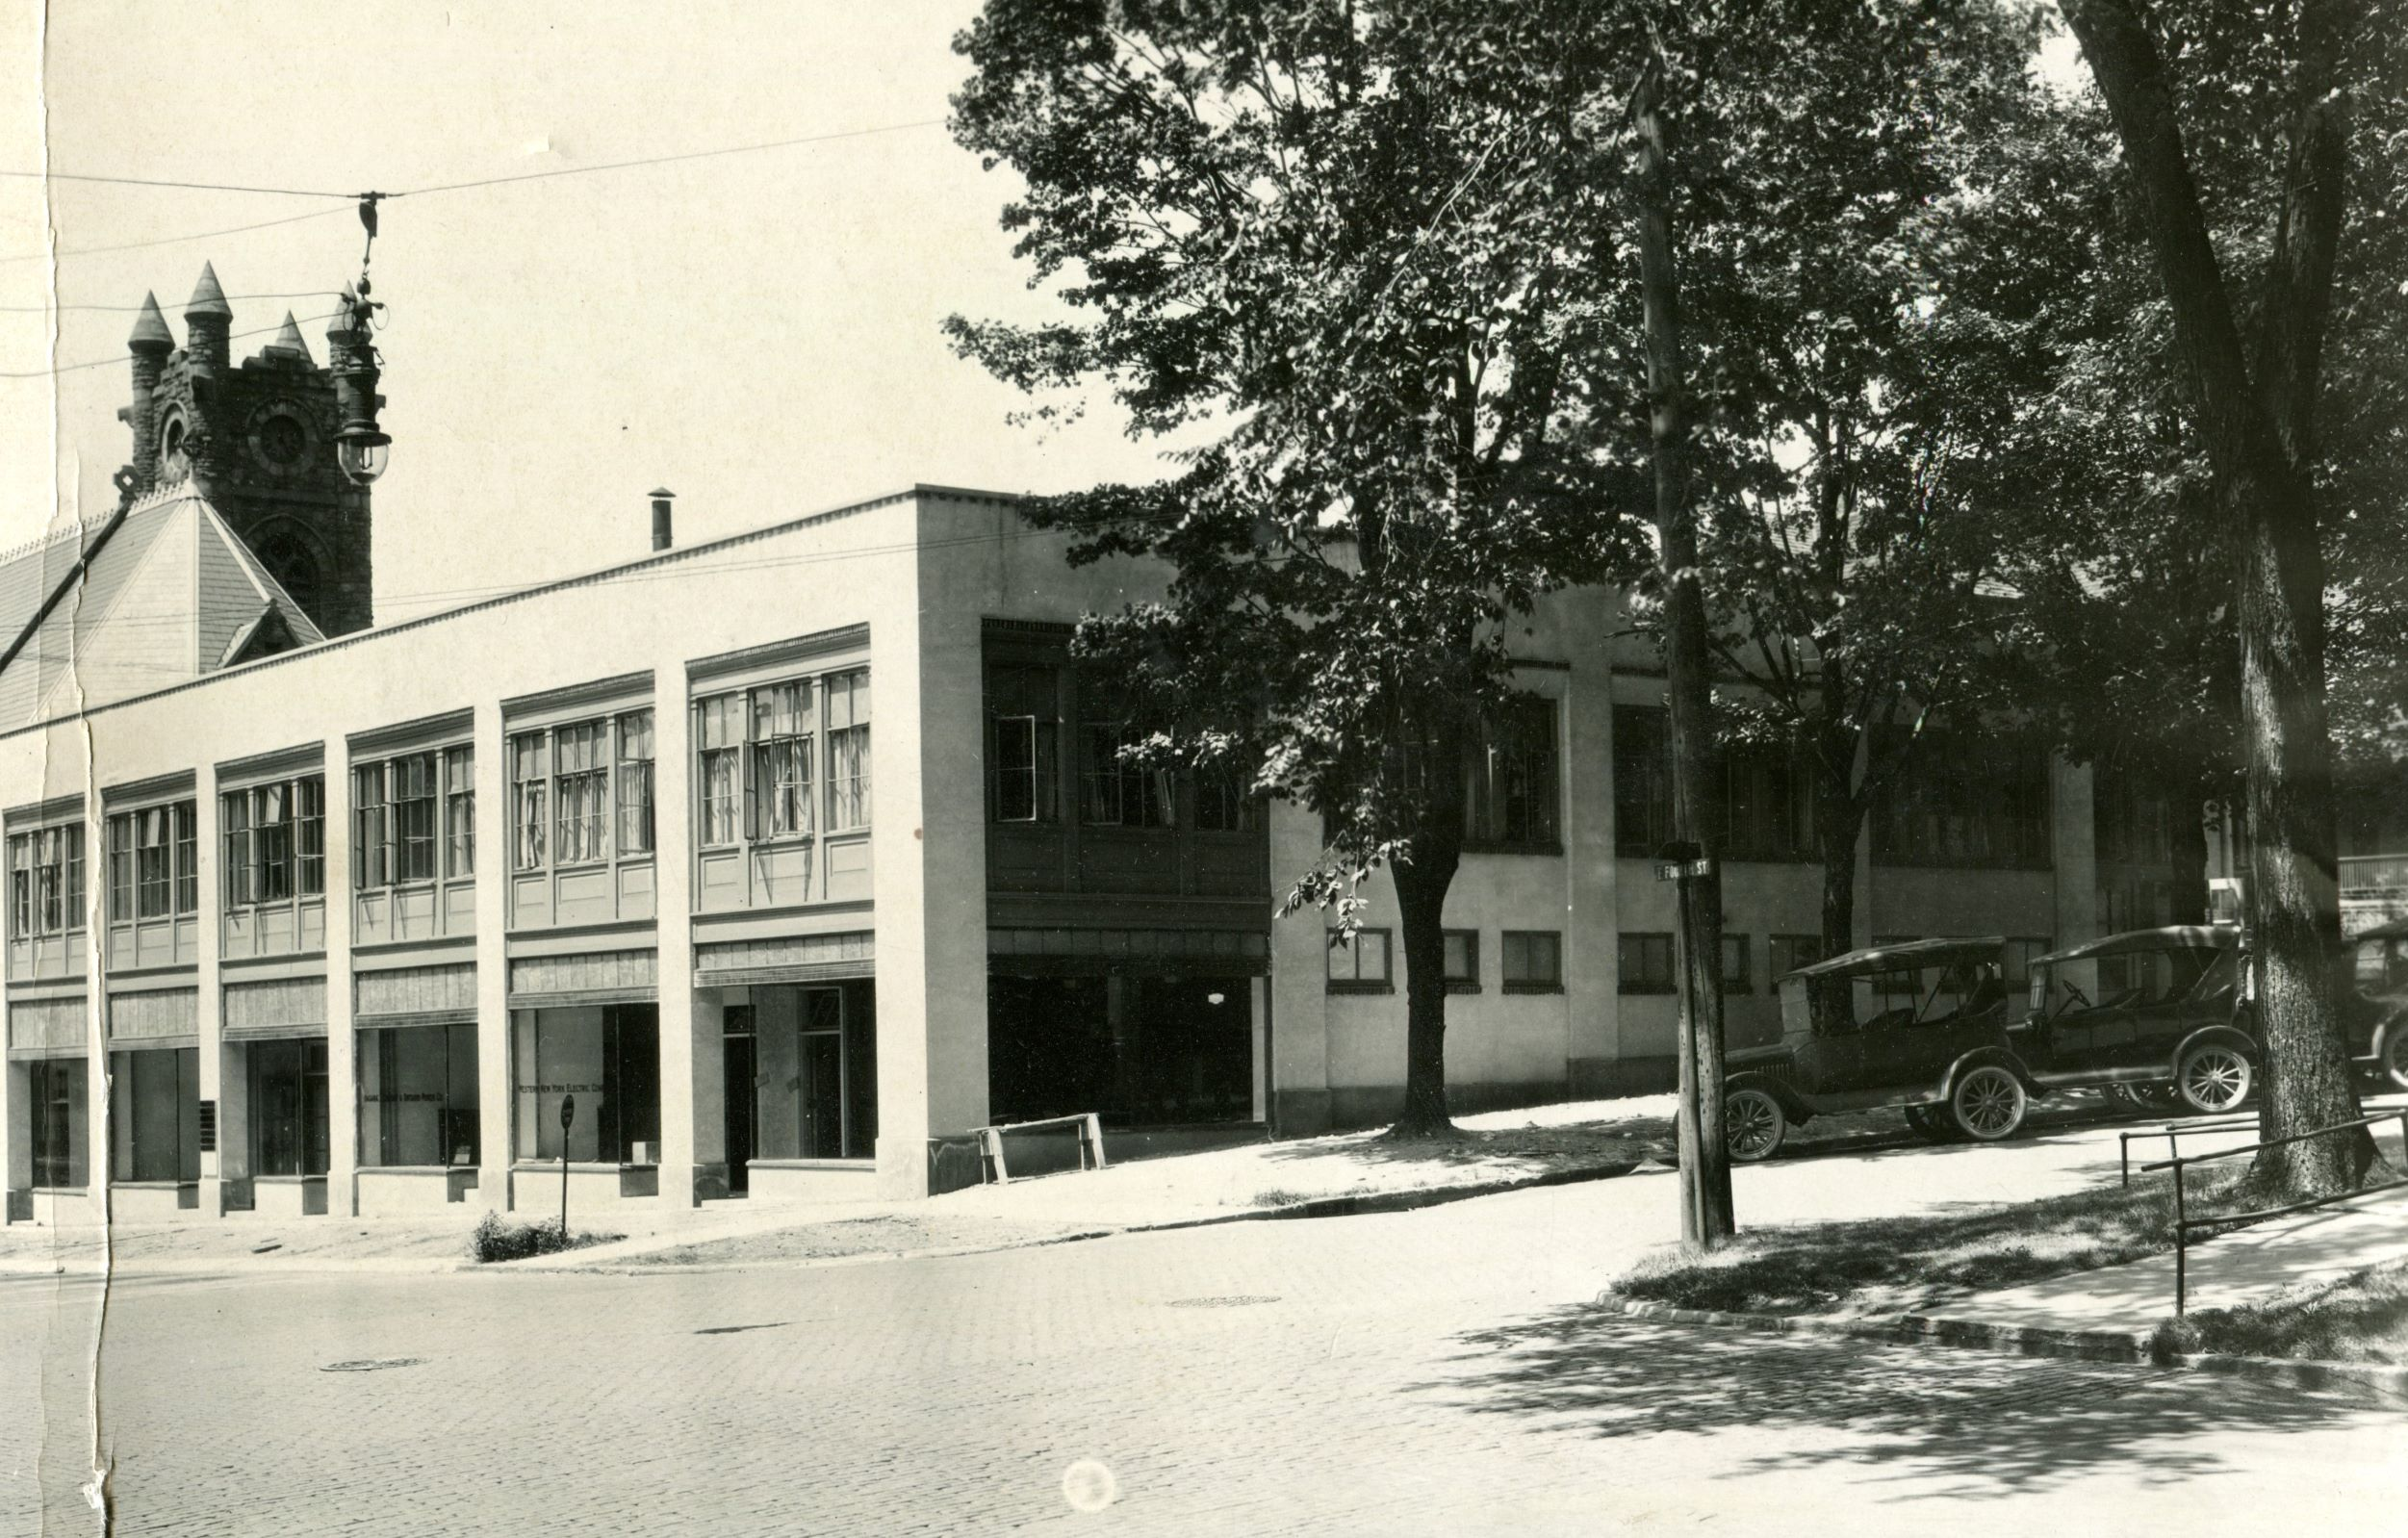 Fourth and Pine Professional Building, Jamestown, NY, as it appeared in the 1920s. Photo courtesy Paul Marlinski.